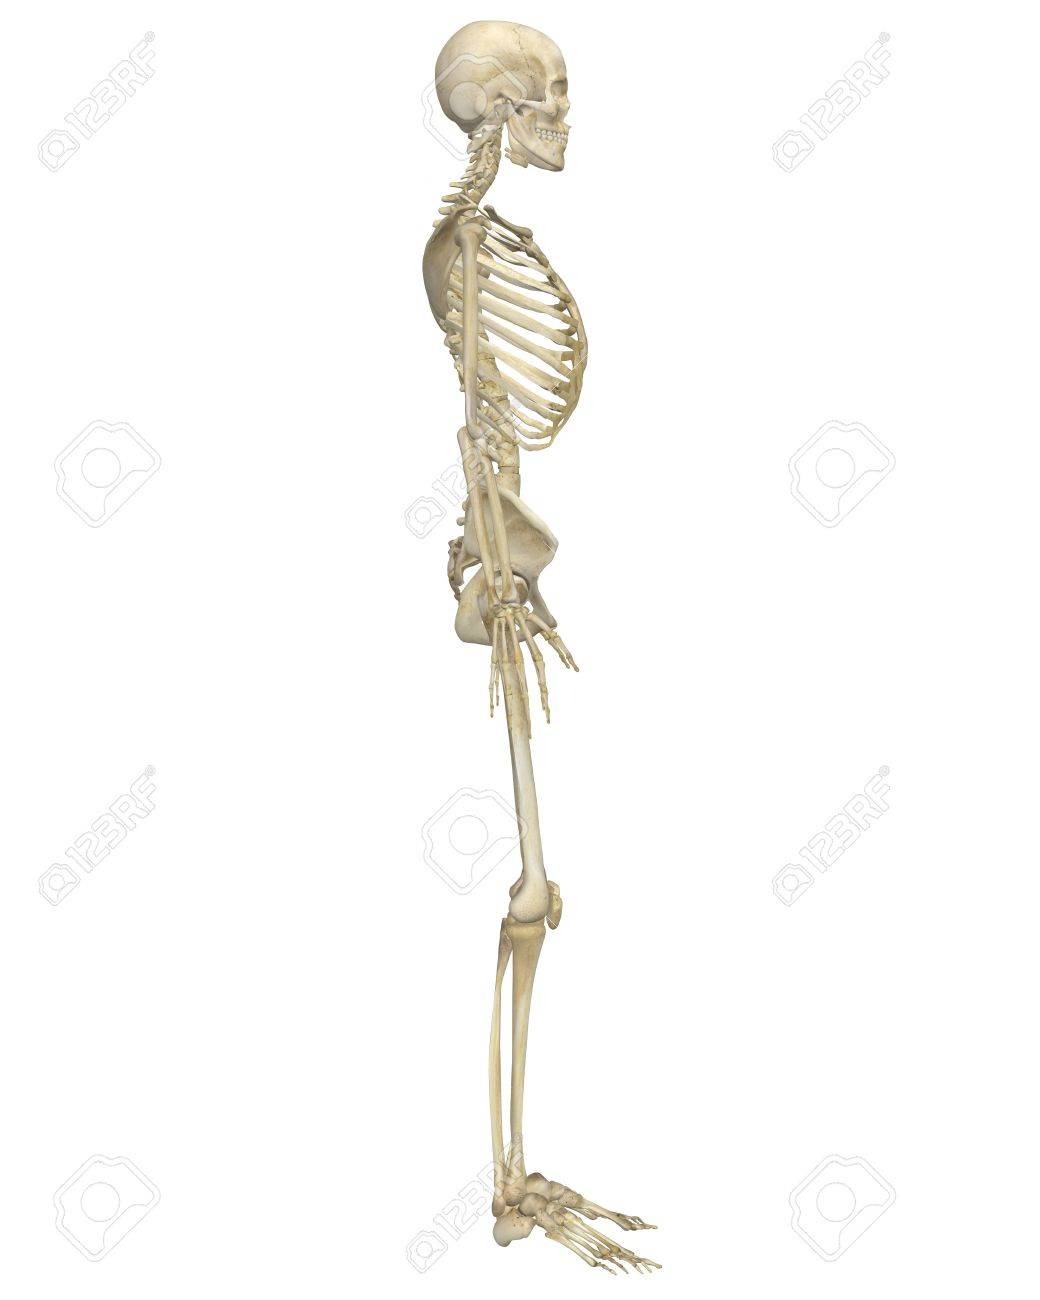 A side view illustration of the human skeletal anatomy. Very educational and detailed. - 11095369